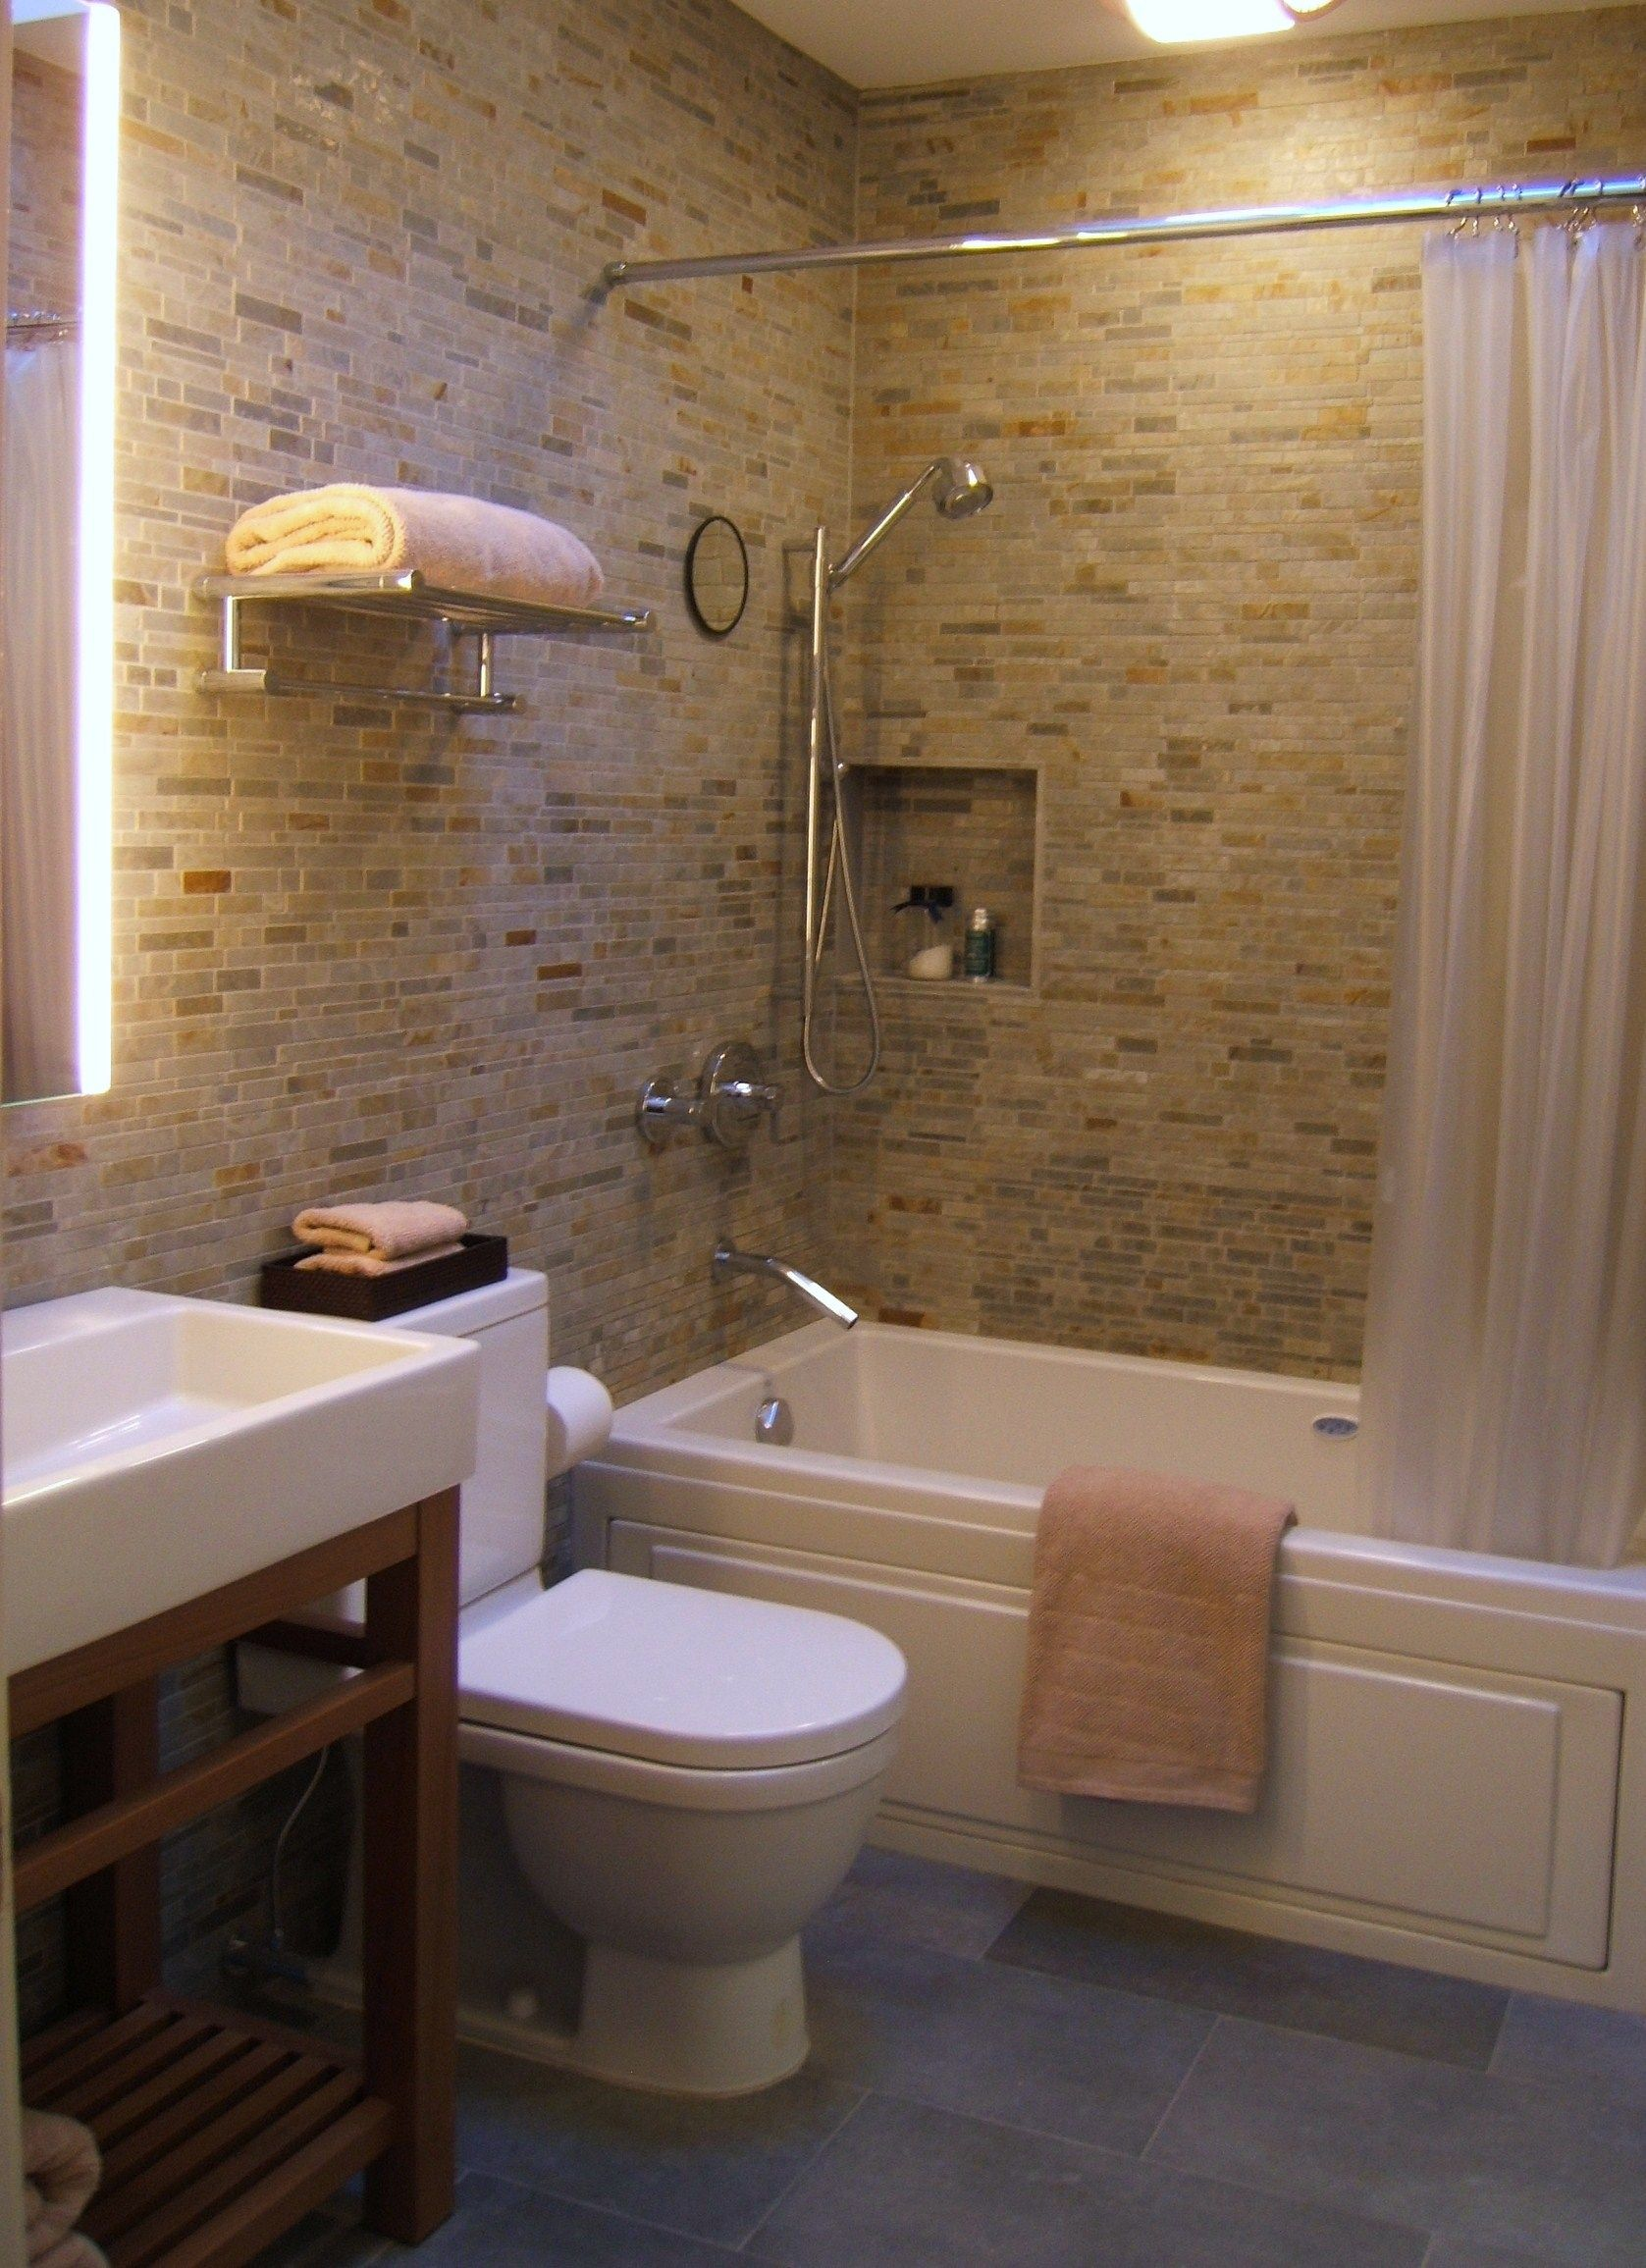 Small bathroom designs south africa small bath for Photos of small bathrooms design ideas